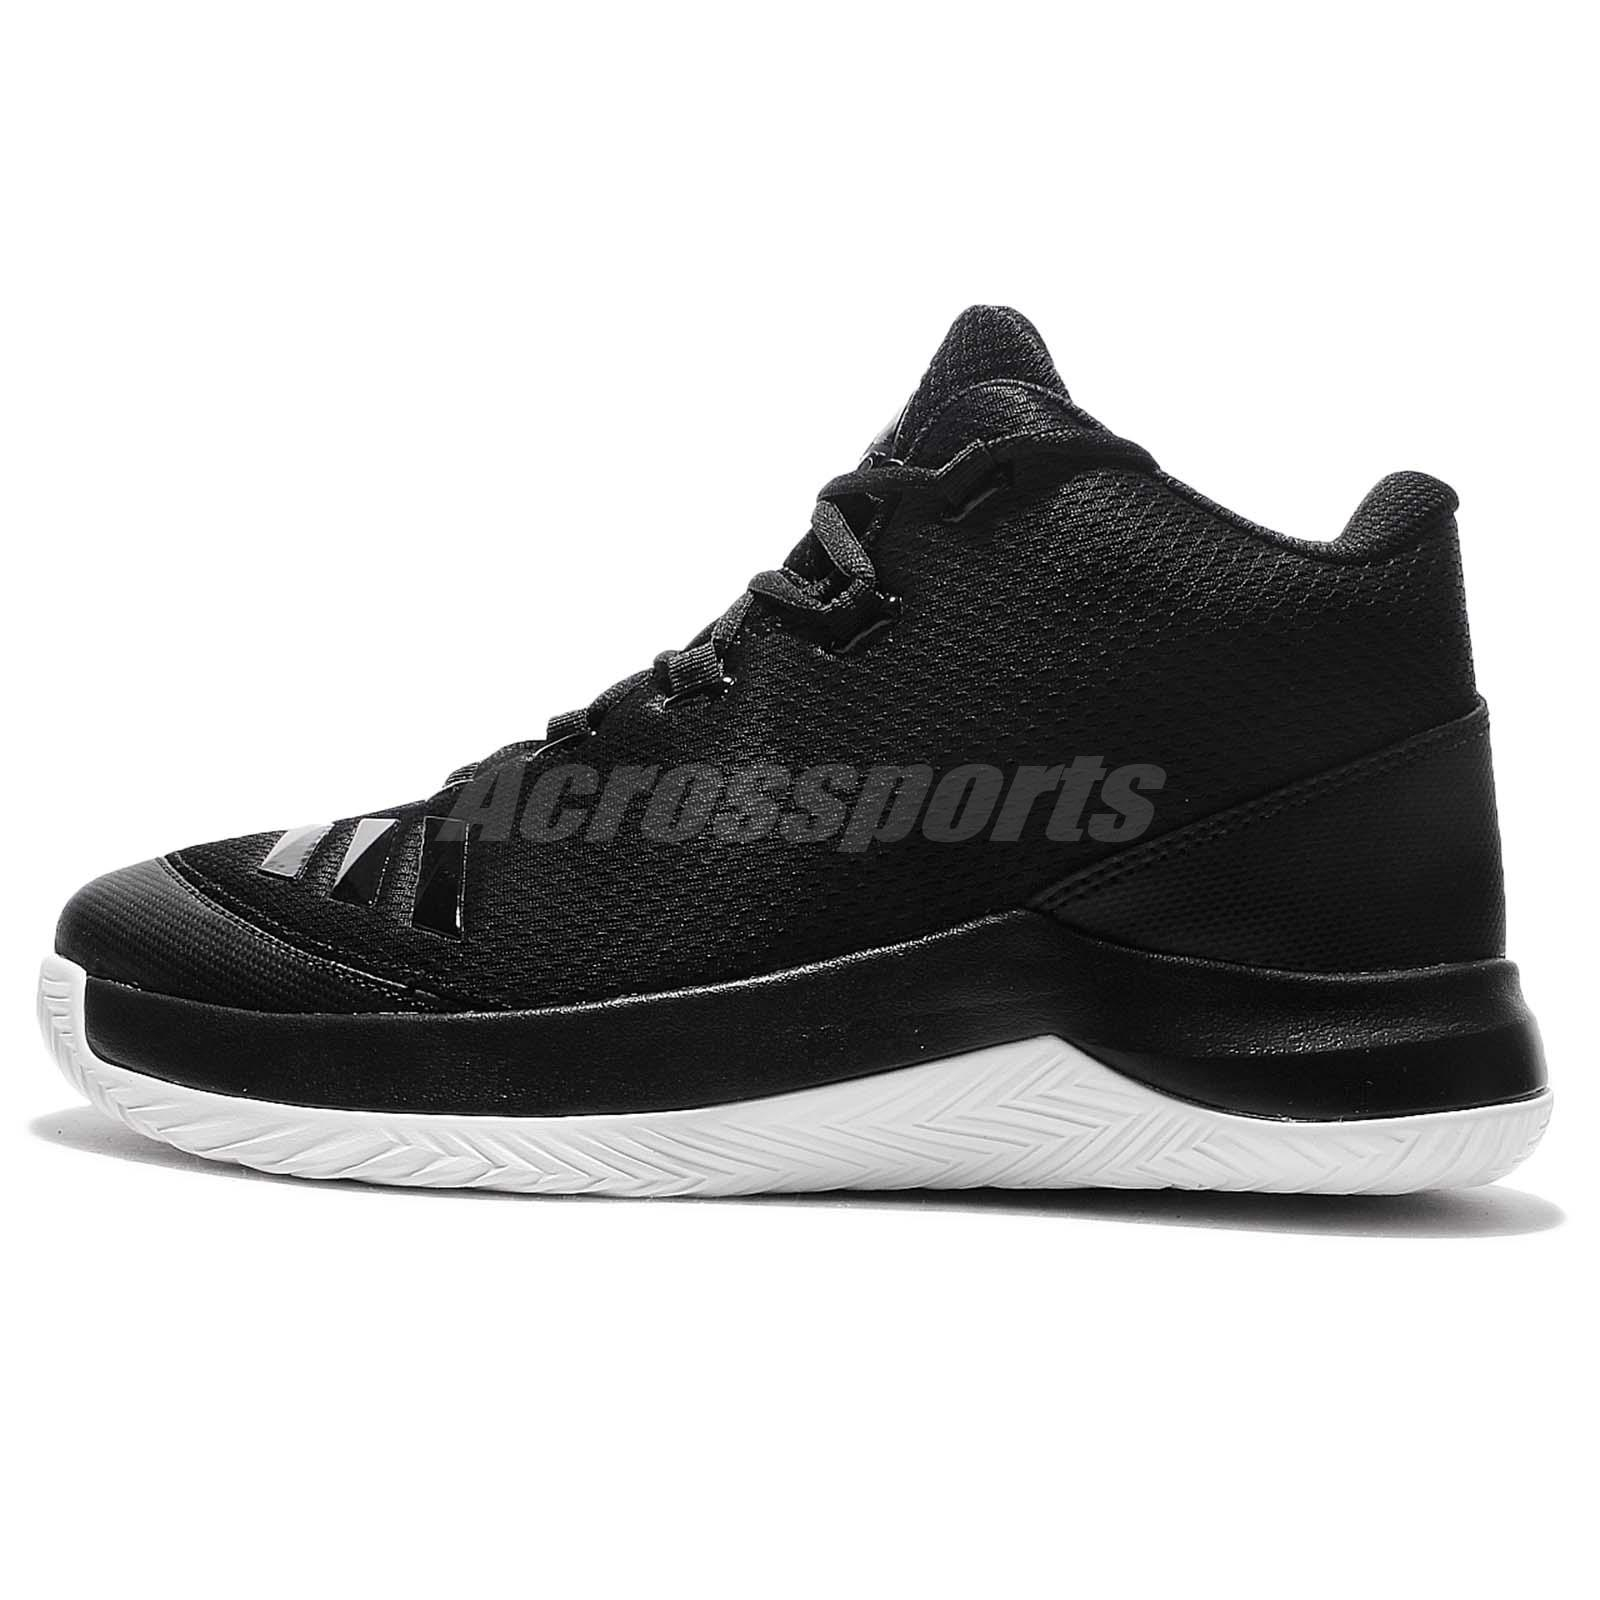 adidas Outrival 2016 Black White Men Top Basketball Shoes Sneakers B54109